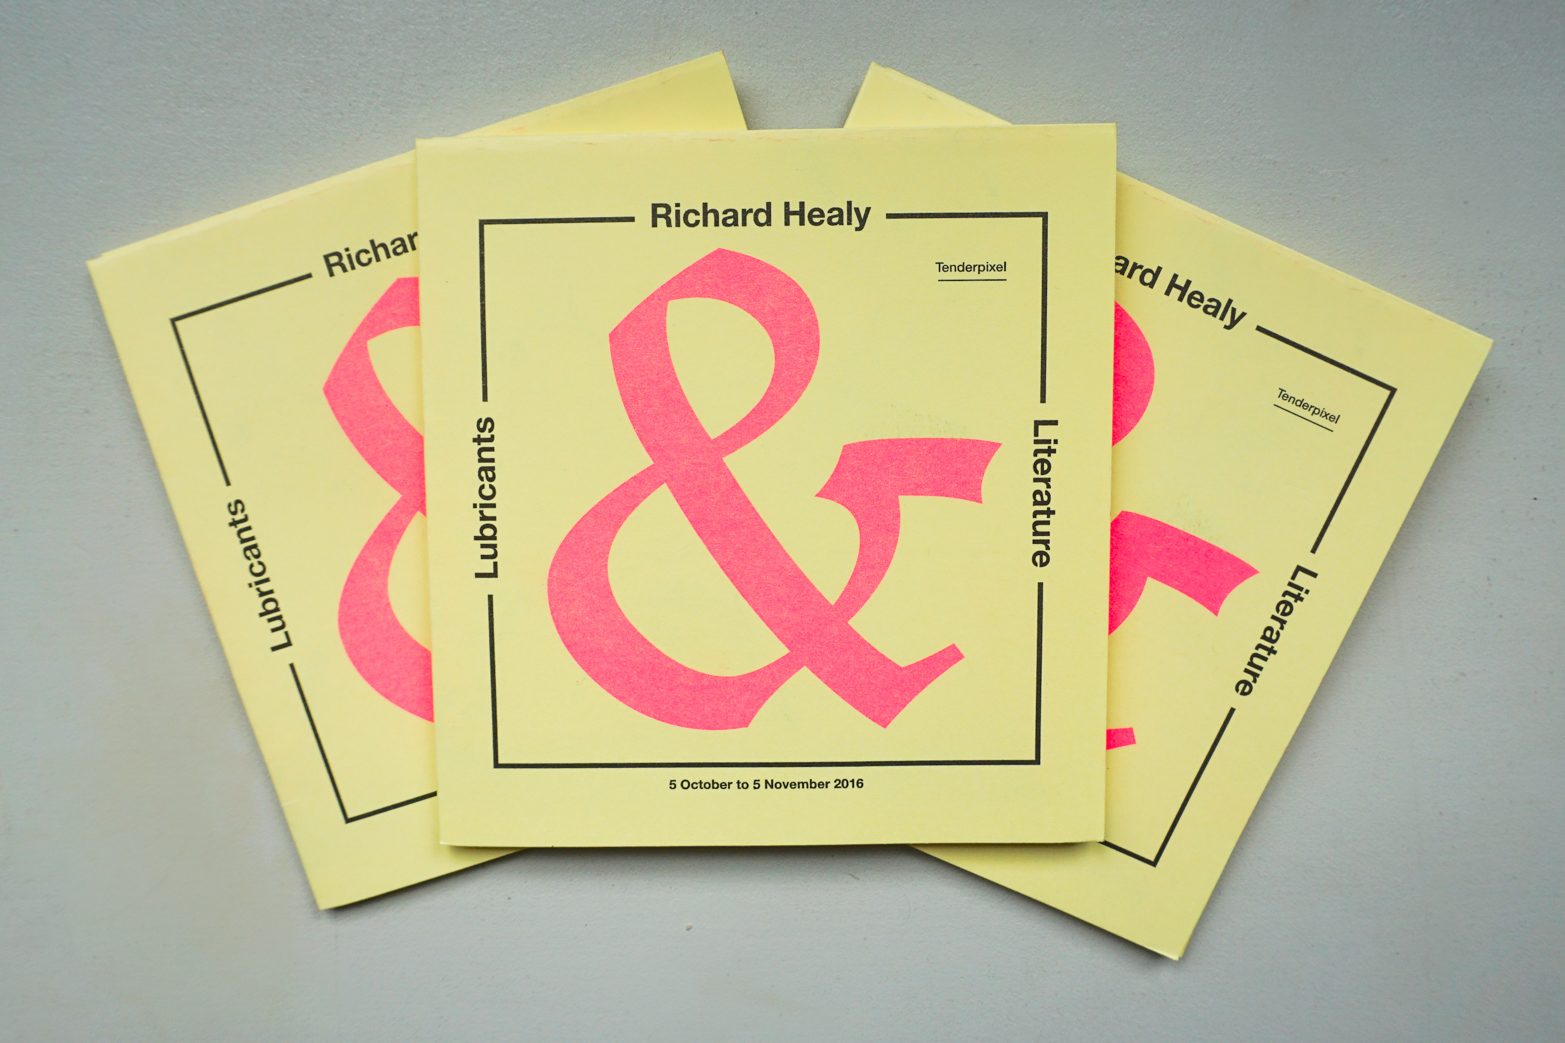 Lubricants & Literature, handout printed by Hato Press, Designed by Rowena Harris and Richard Healy. Tenderpixel.